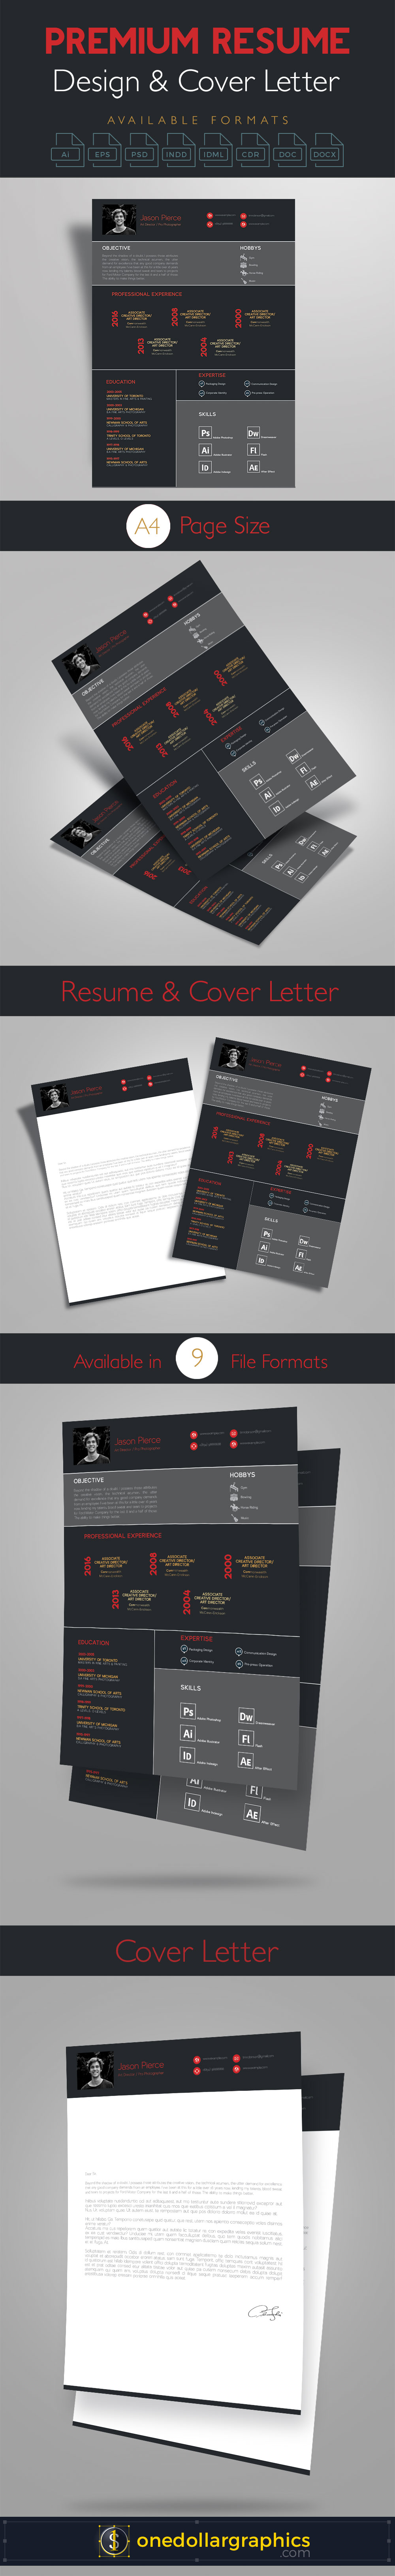 cover letter sample for job application for freshers%0A Premium Resume  CV  Design  Cover Letter Template    PSD MockUps